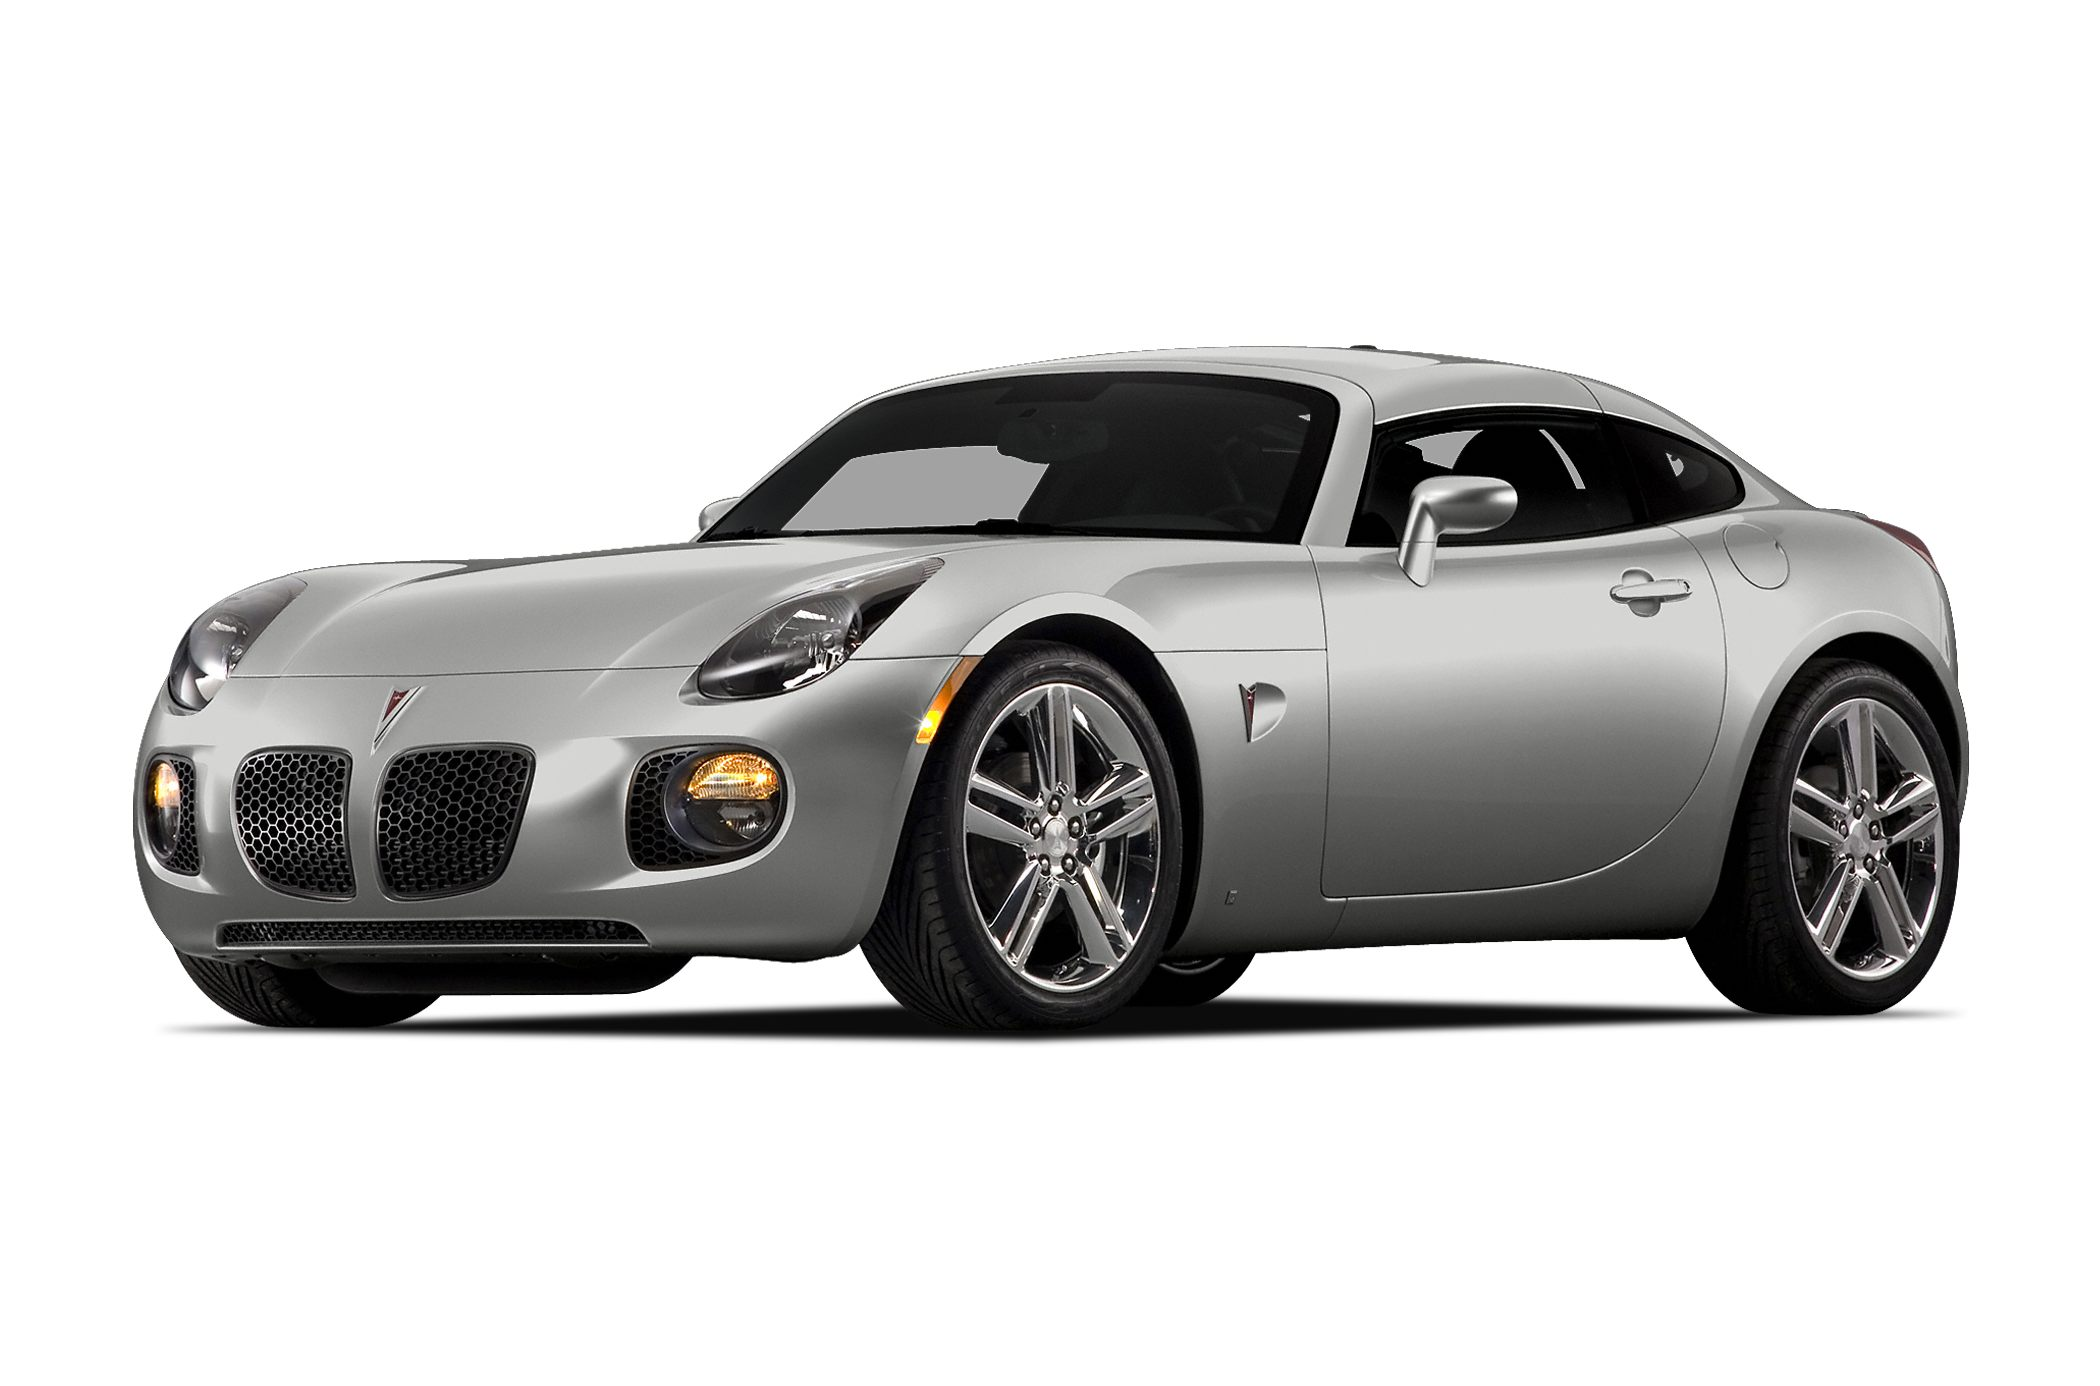 2009 Pontiac Solstice